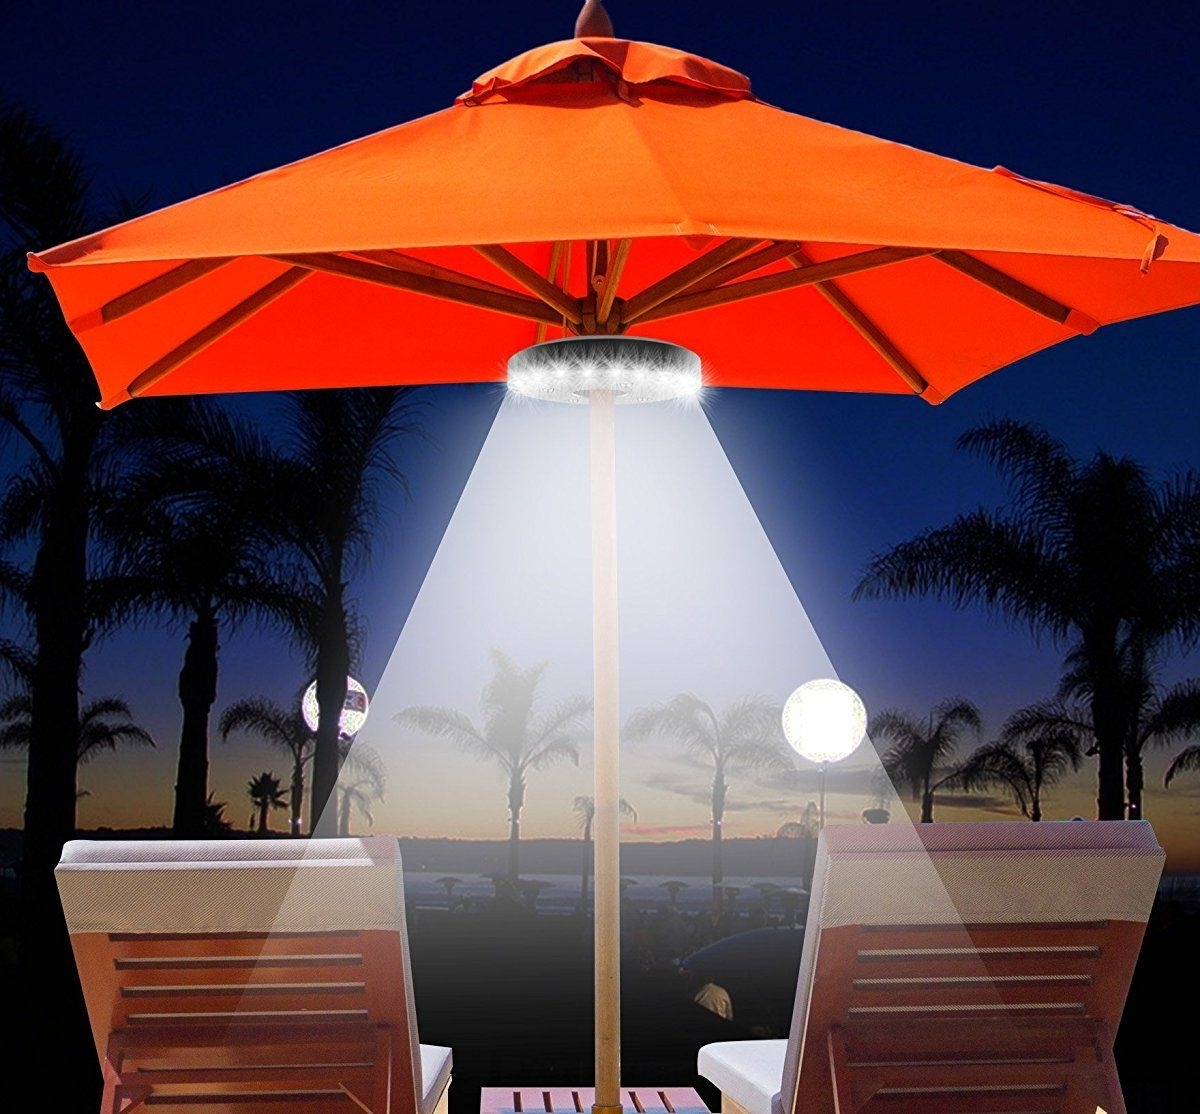 Patio Umbrella Lights Within Well Known Qpau Patio Umbrella Light, 3 Lighting Modes Cordless 28 Led Lights (View 18 of 20)